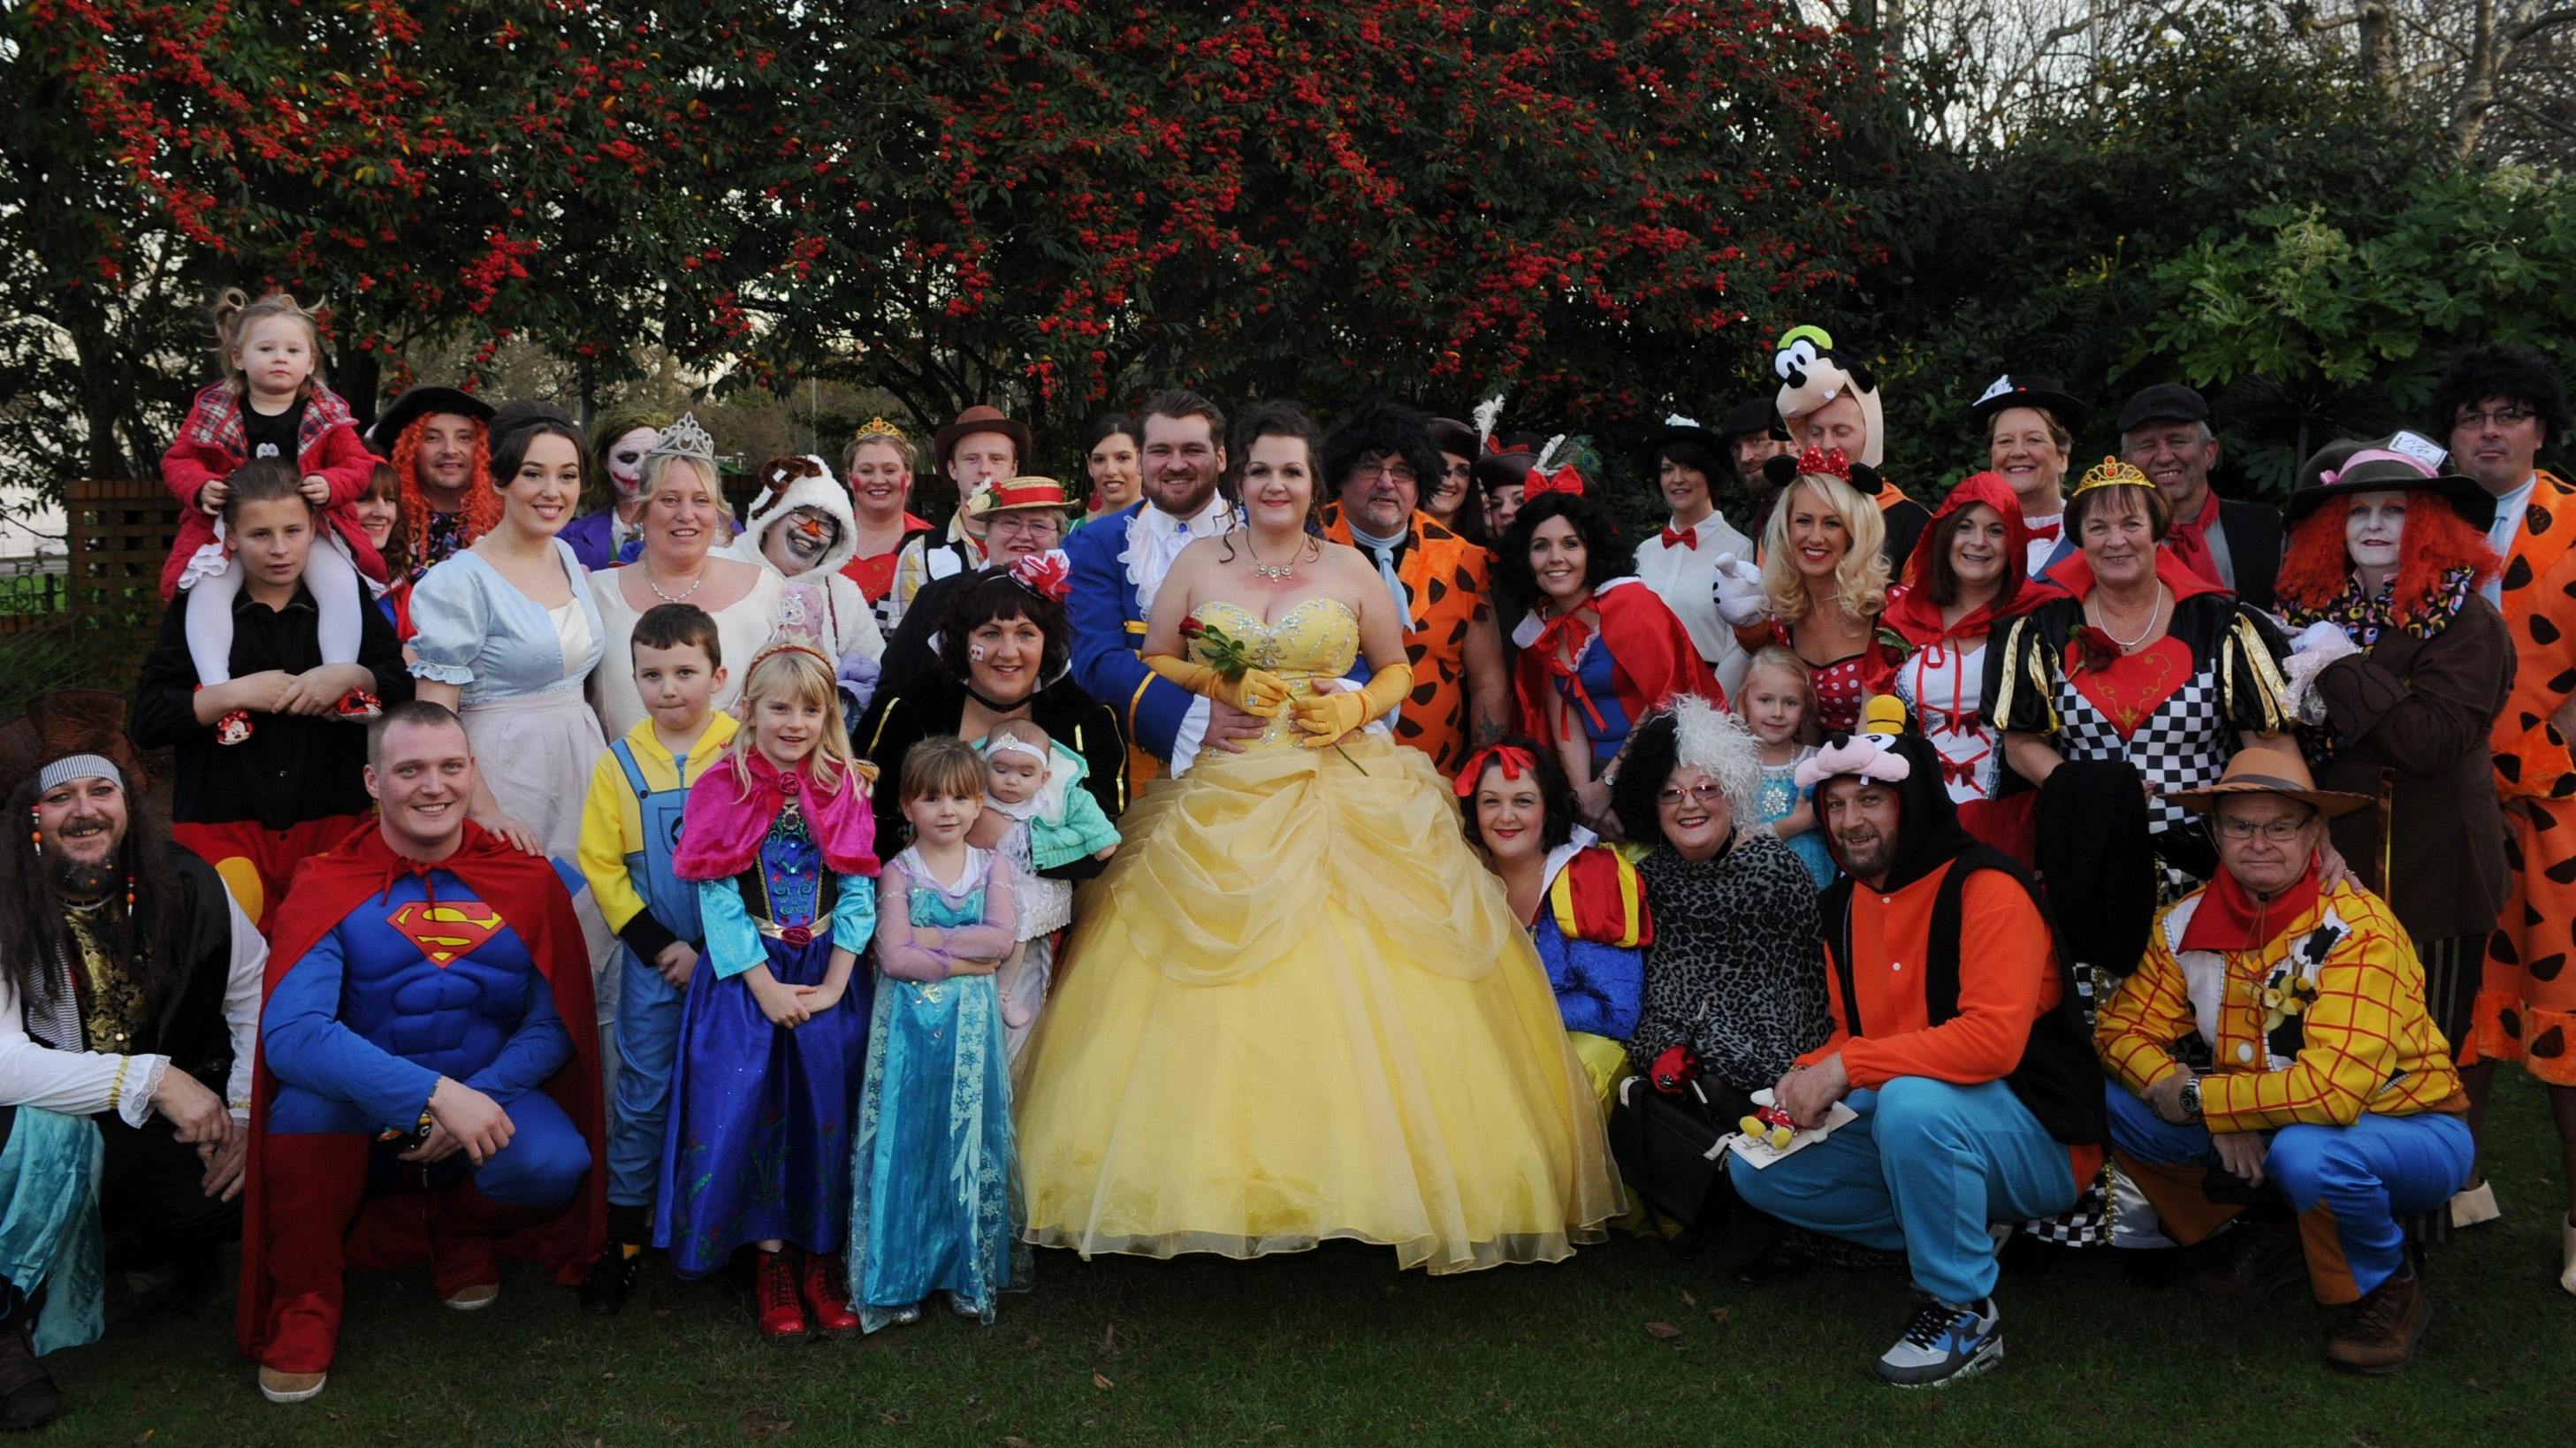 Guests join in with fancy dress at surprise Disney themed